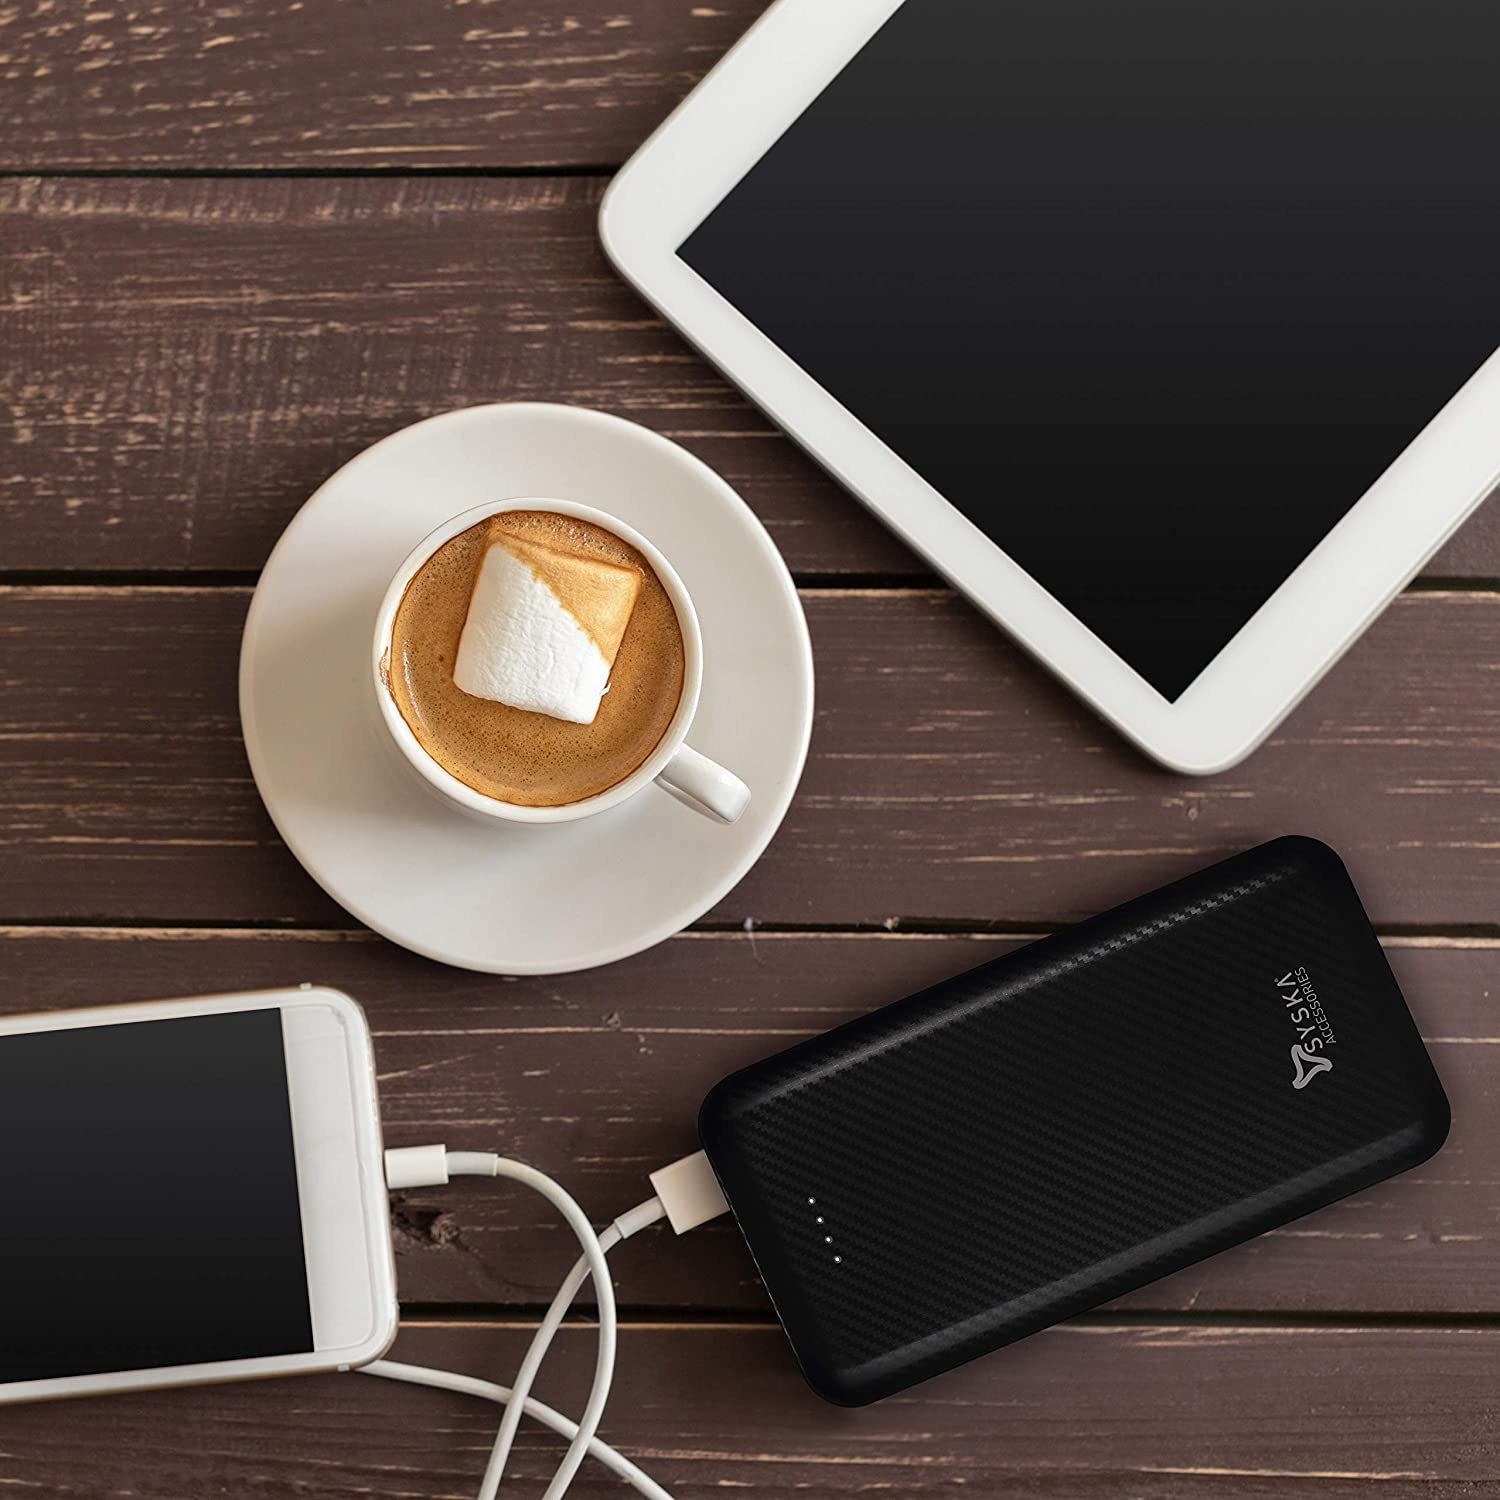 A phone connected to the powerbank, kept on a table beside a tablet and coffee.